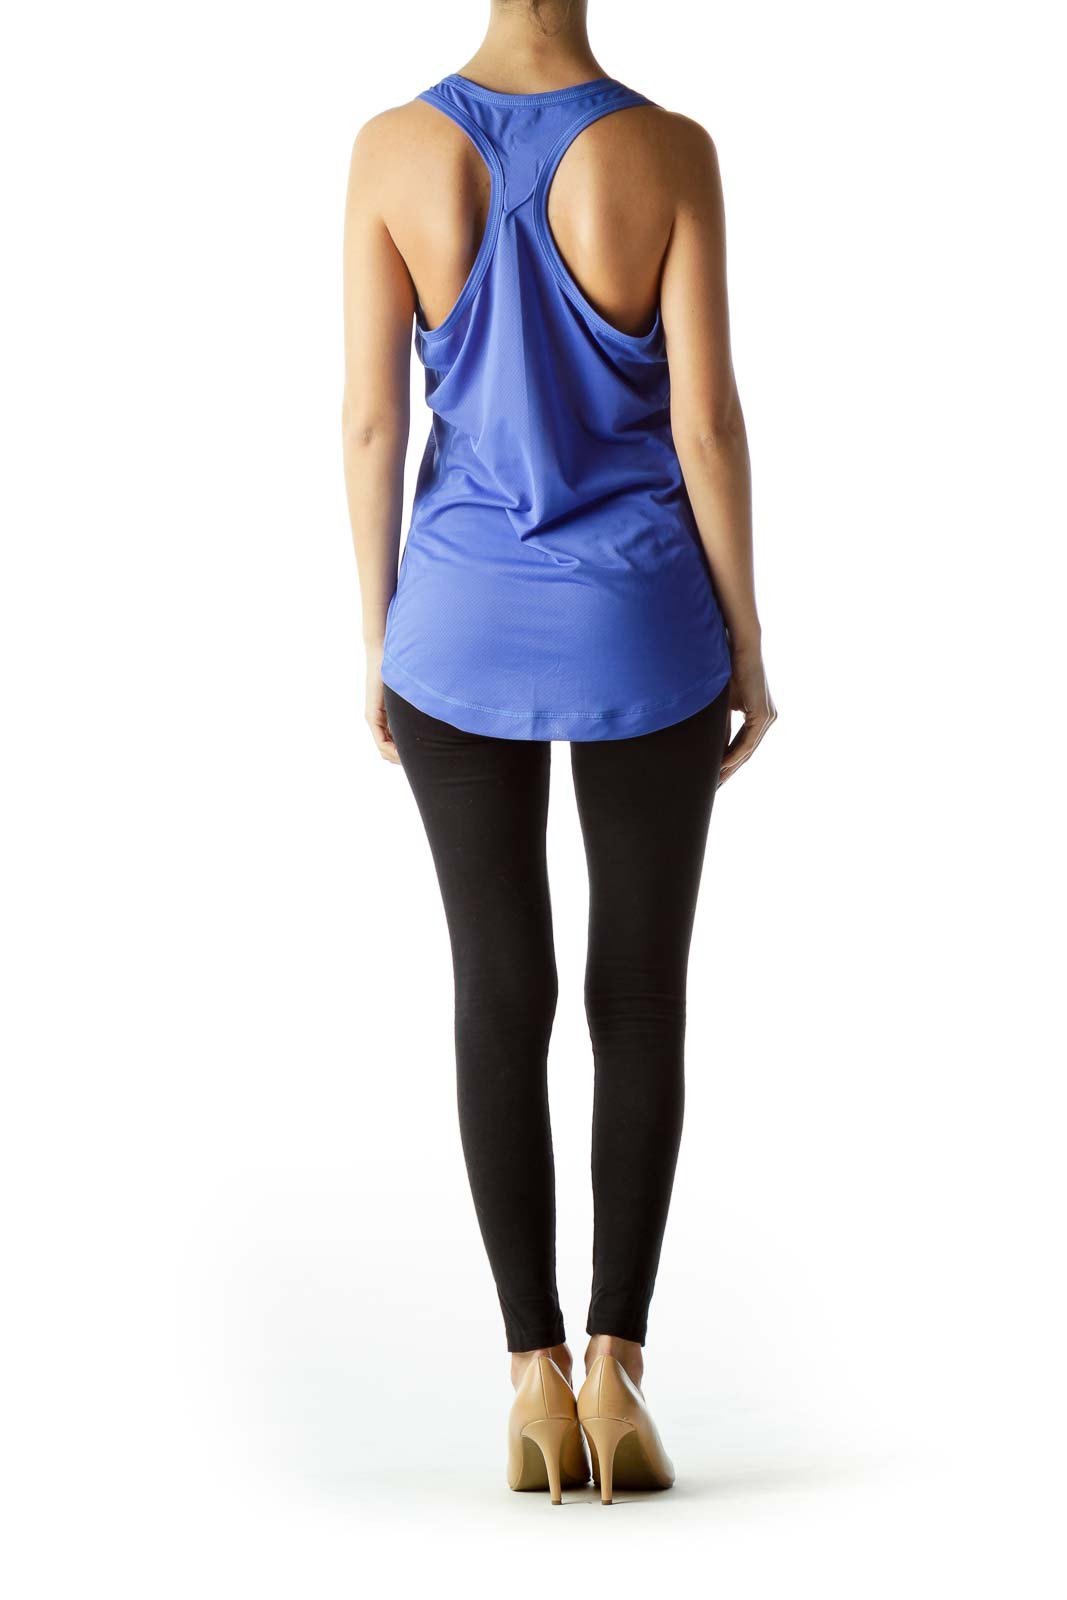 Electric Blue Racerback Sports Tank Top